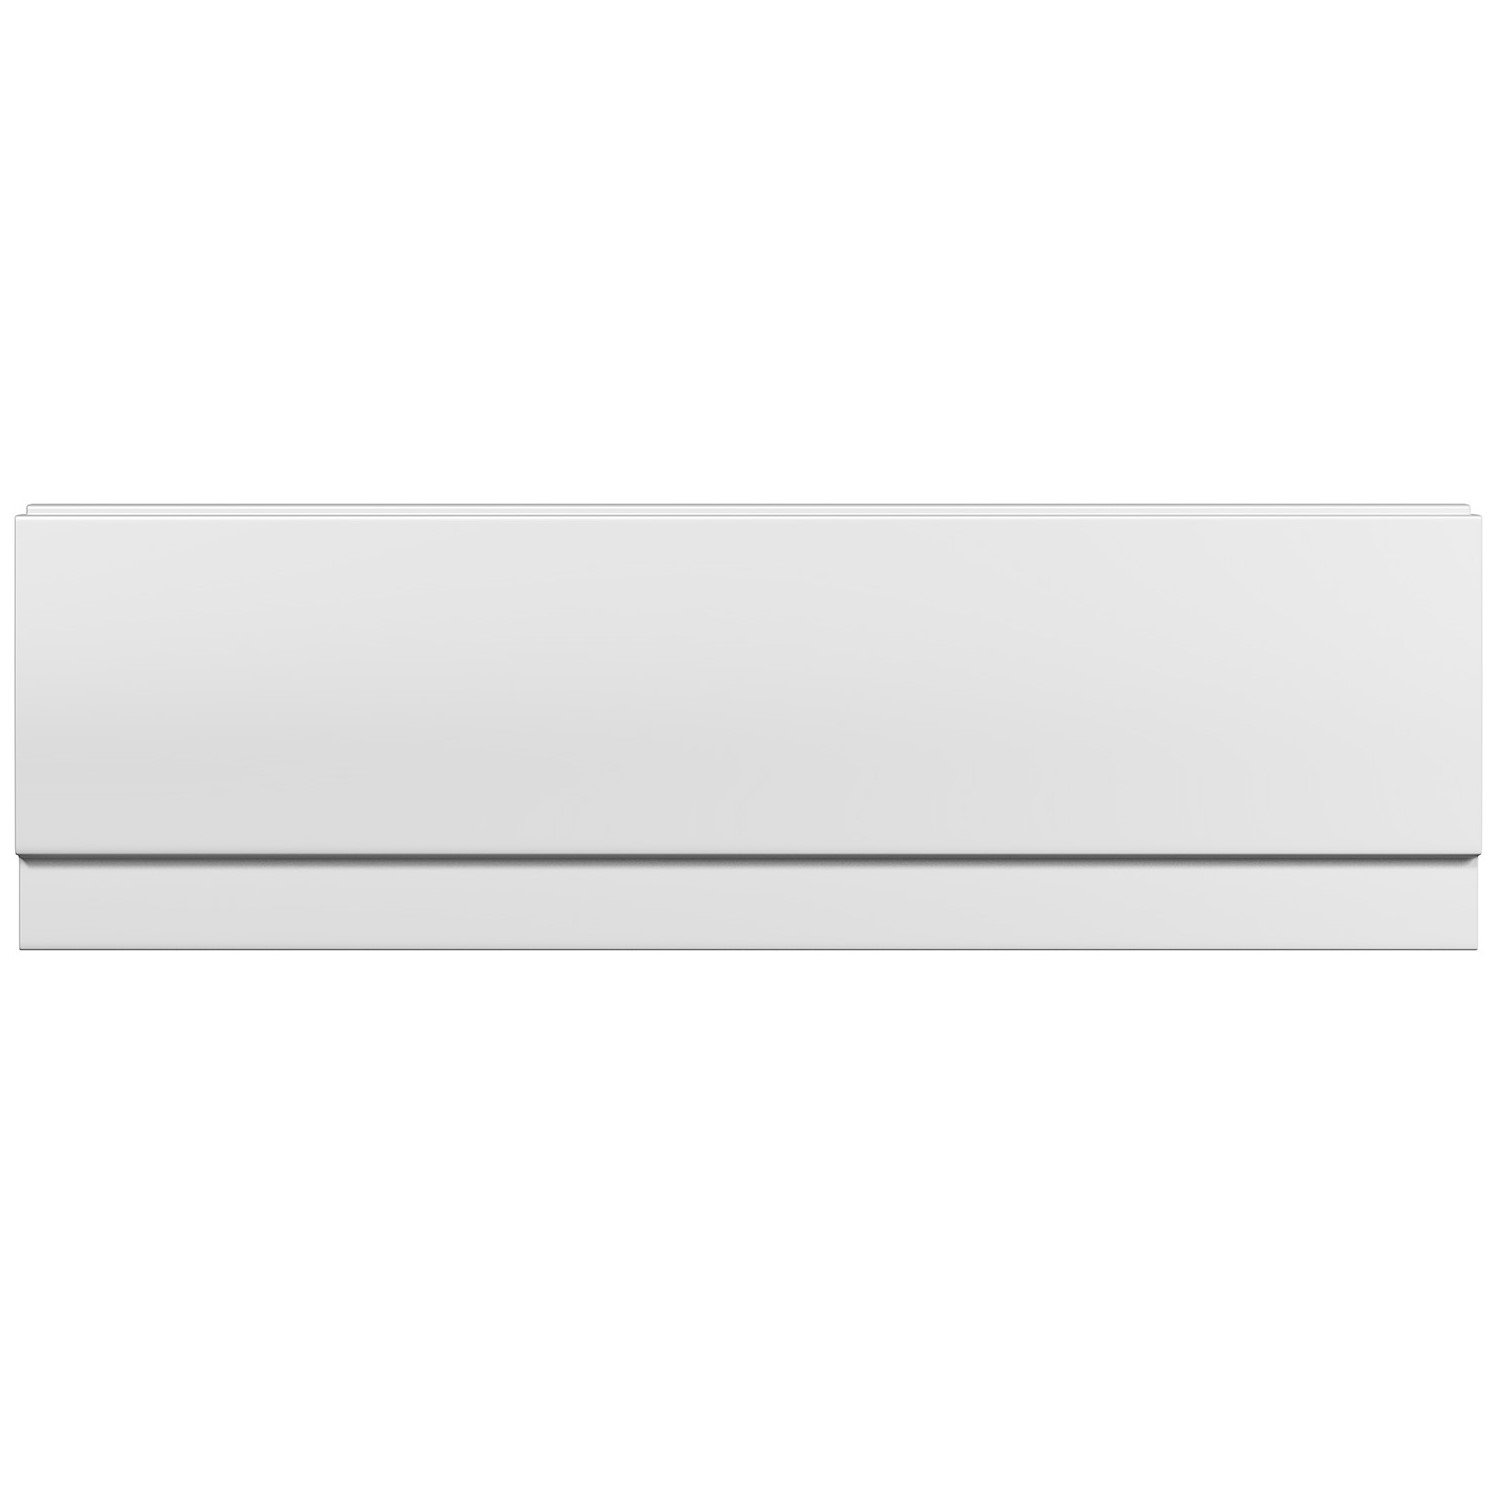 1600mm Modern White Gloss Straight Side Bath Panel iBathUK